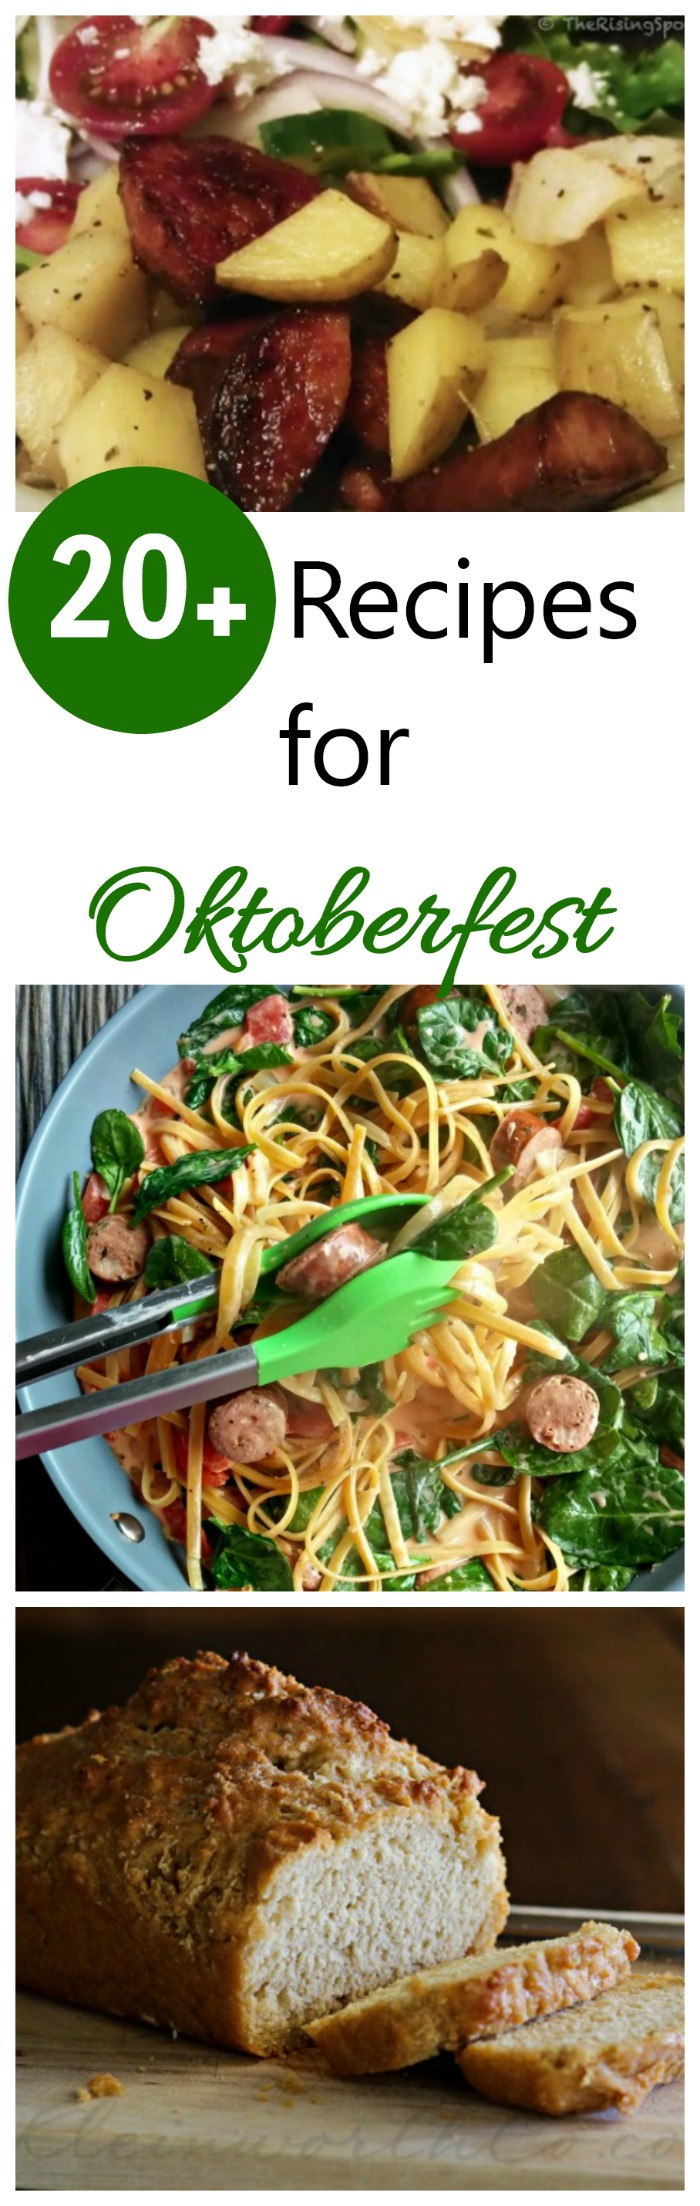 These 20+ recipes are the perfect way to celebrate Oktoberfest. #oktoberfest #beerfestival